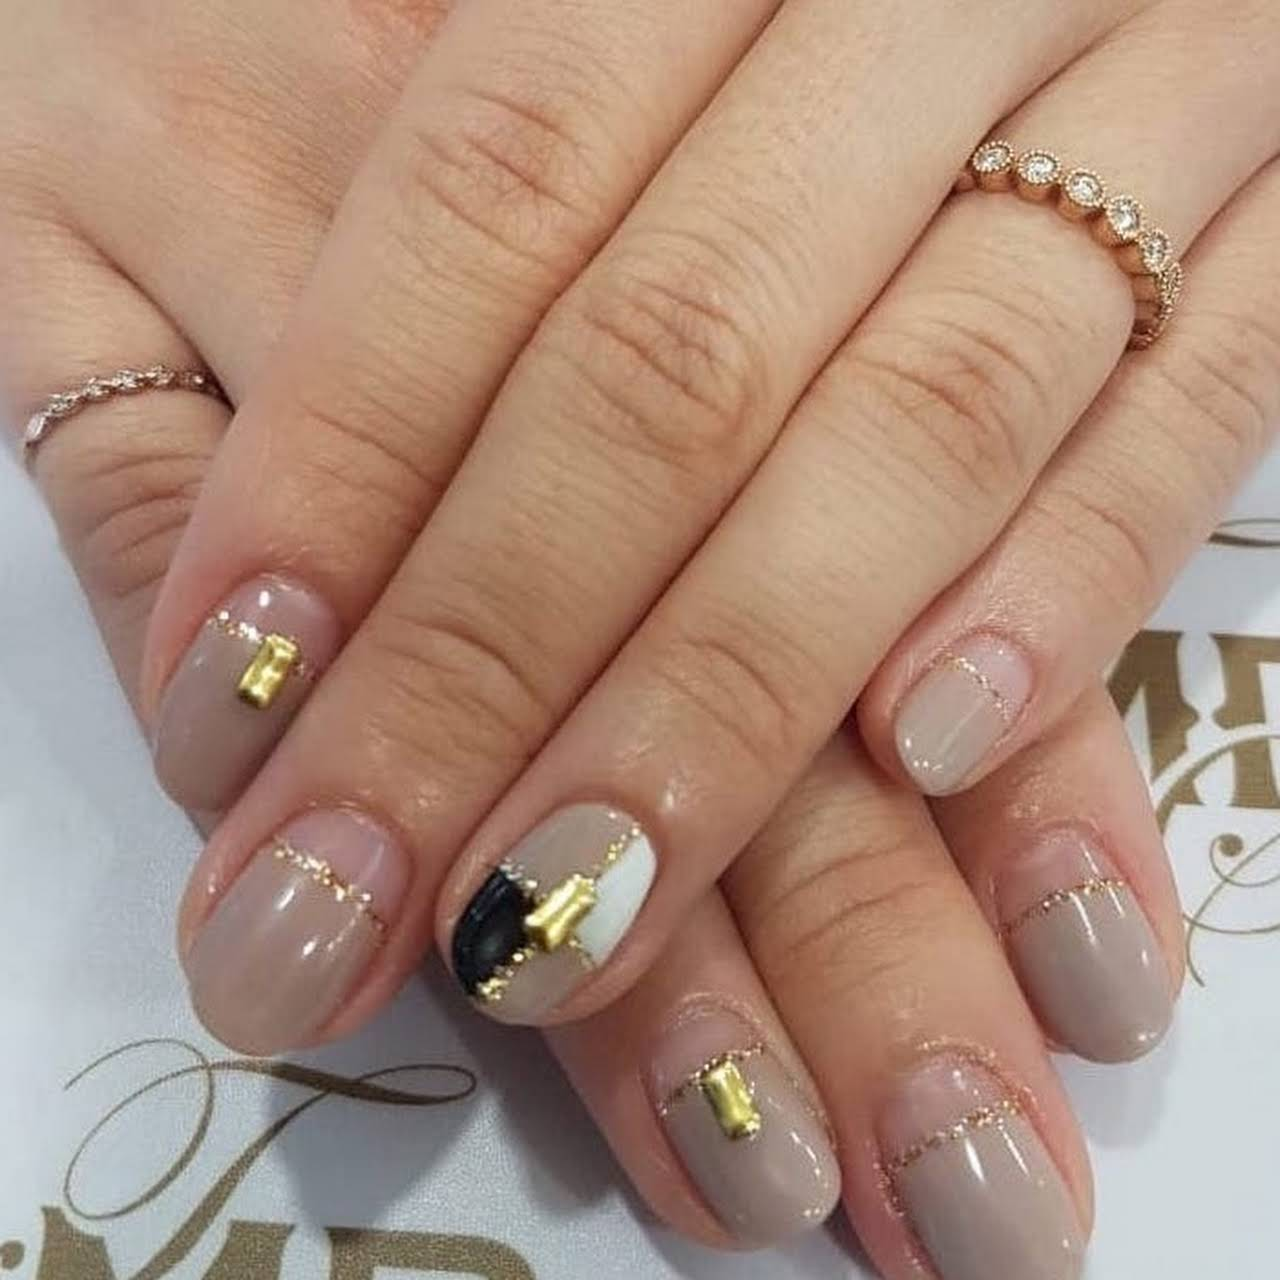 International Manicure with Nails Art